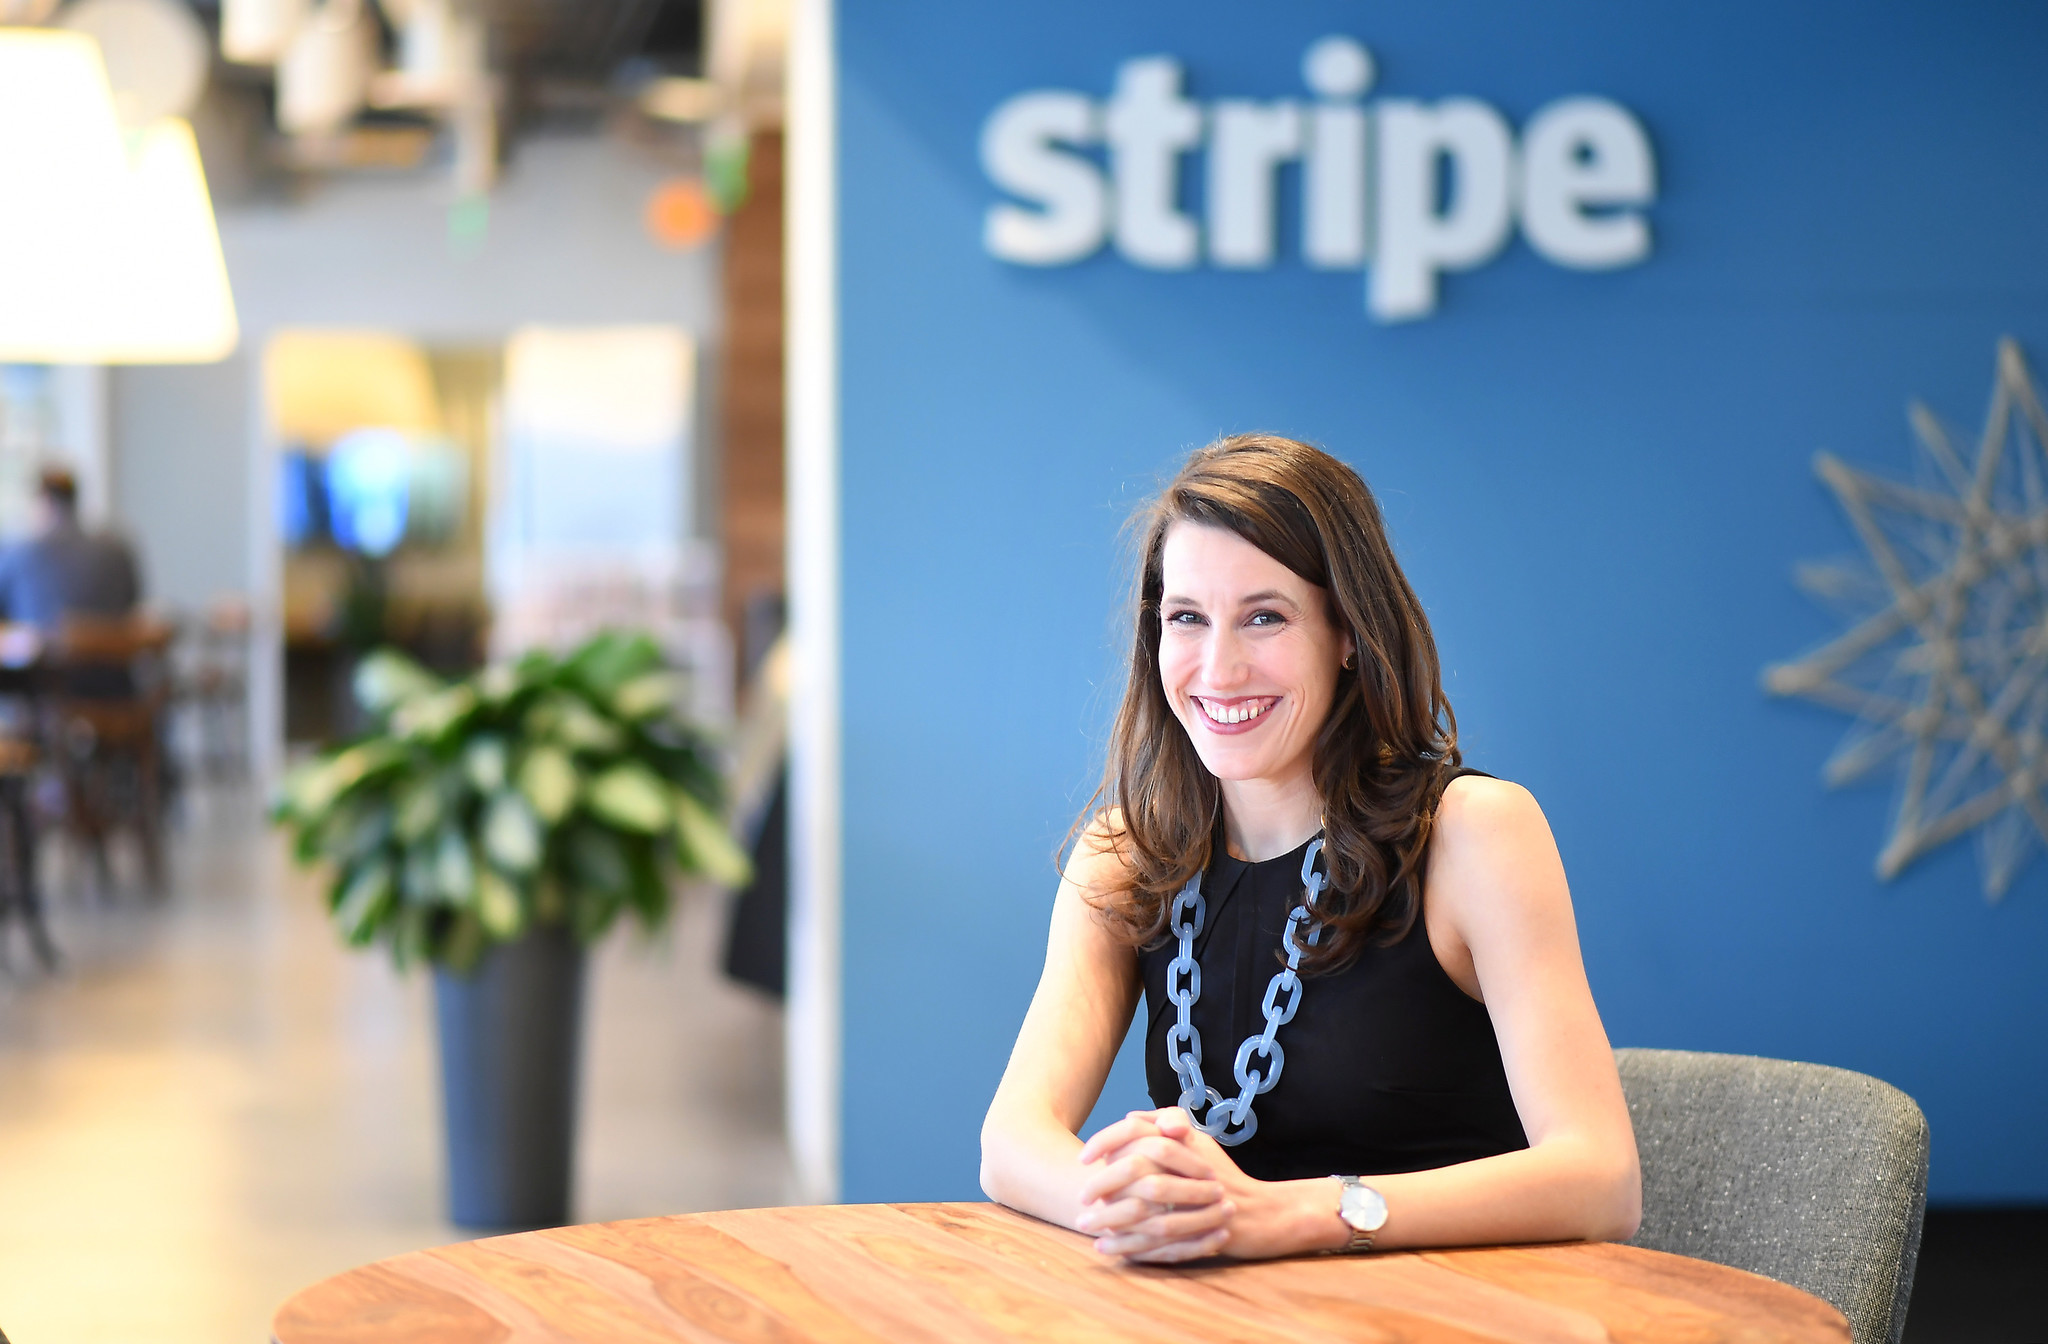 Sarah Heck, former Director of Global Engagement at the White House under Obama, now works for Stripe in San Francisco.